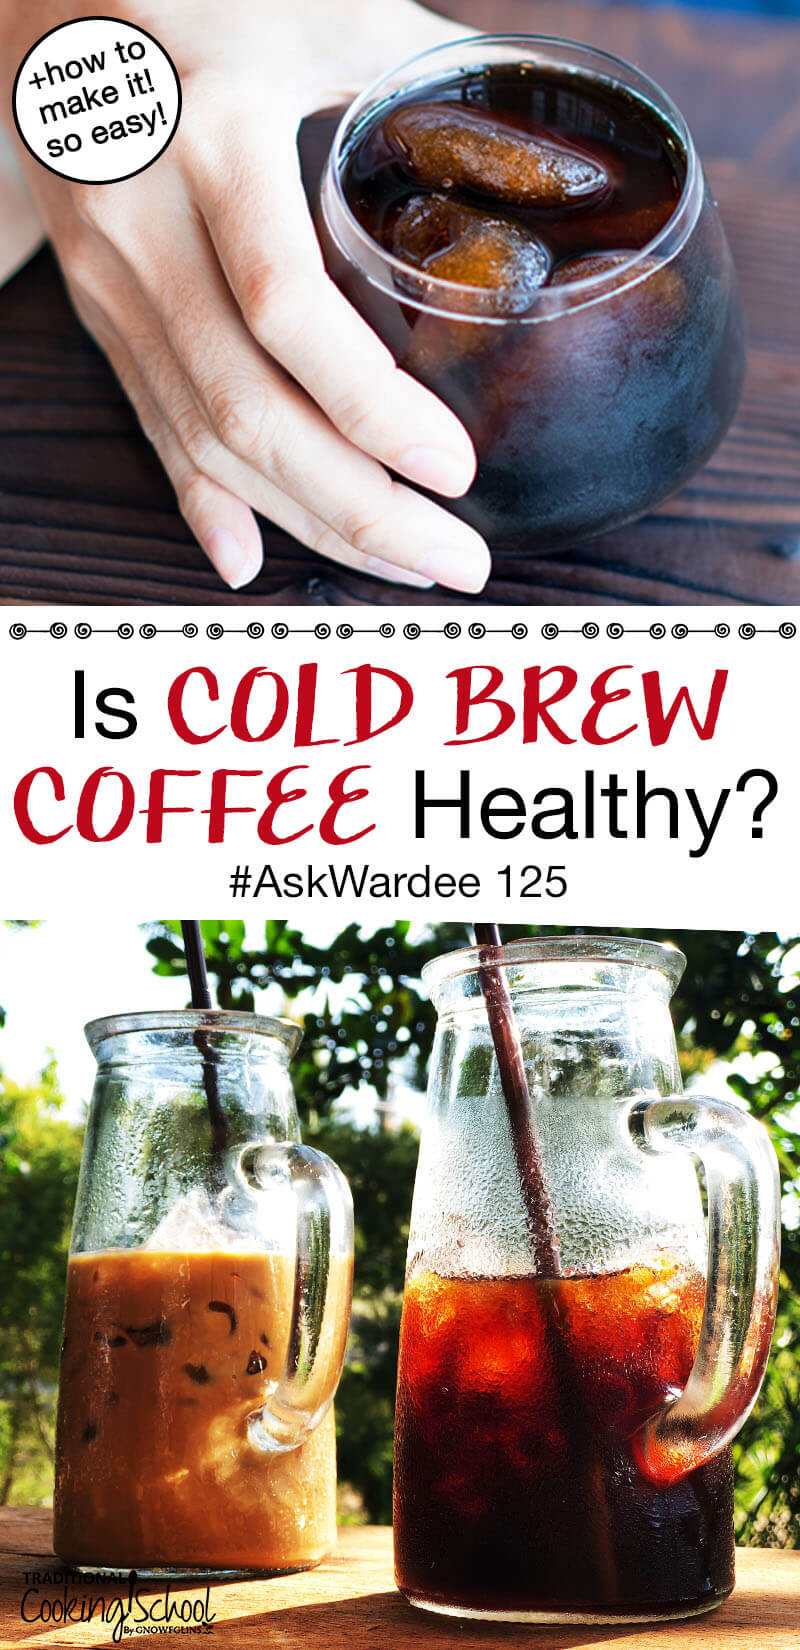 """photo collage of how to make cold brew coffee, with text overlay: """"Is Cold Brew Coffee Healthy? #AskWardee 125 (+how to make it! so easy!)"""""""